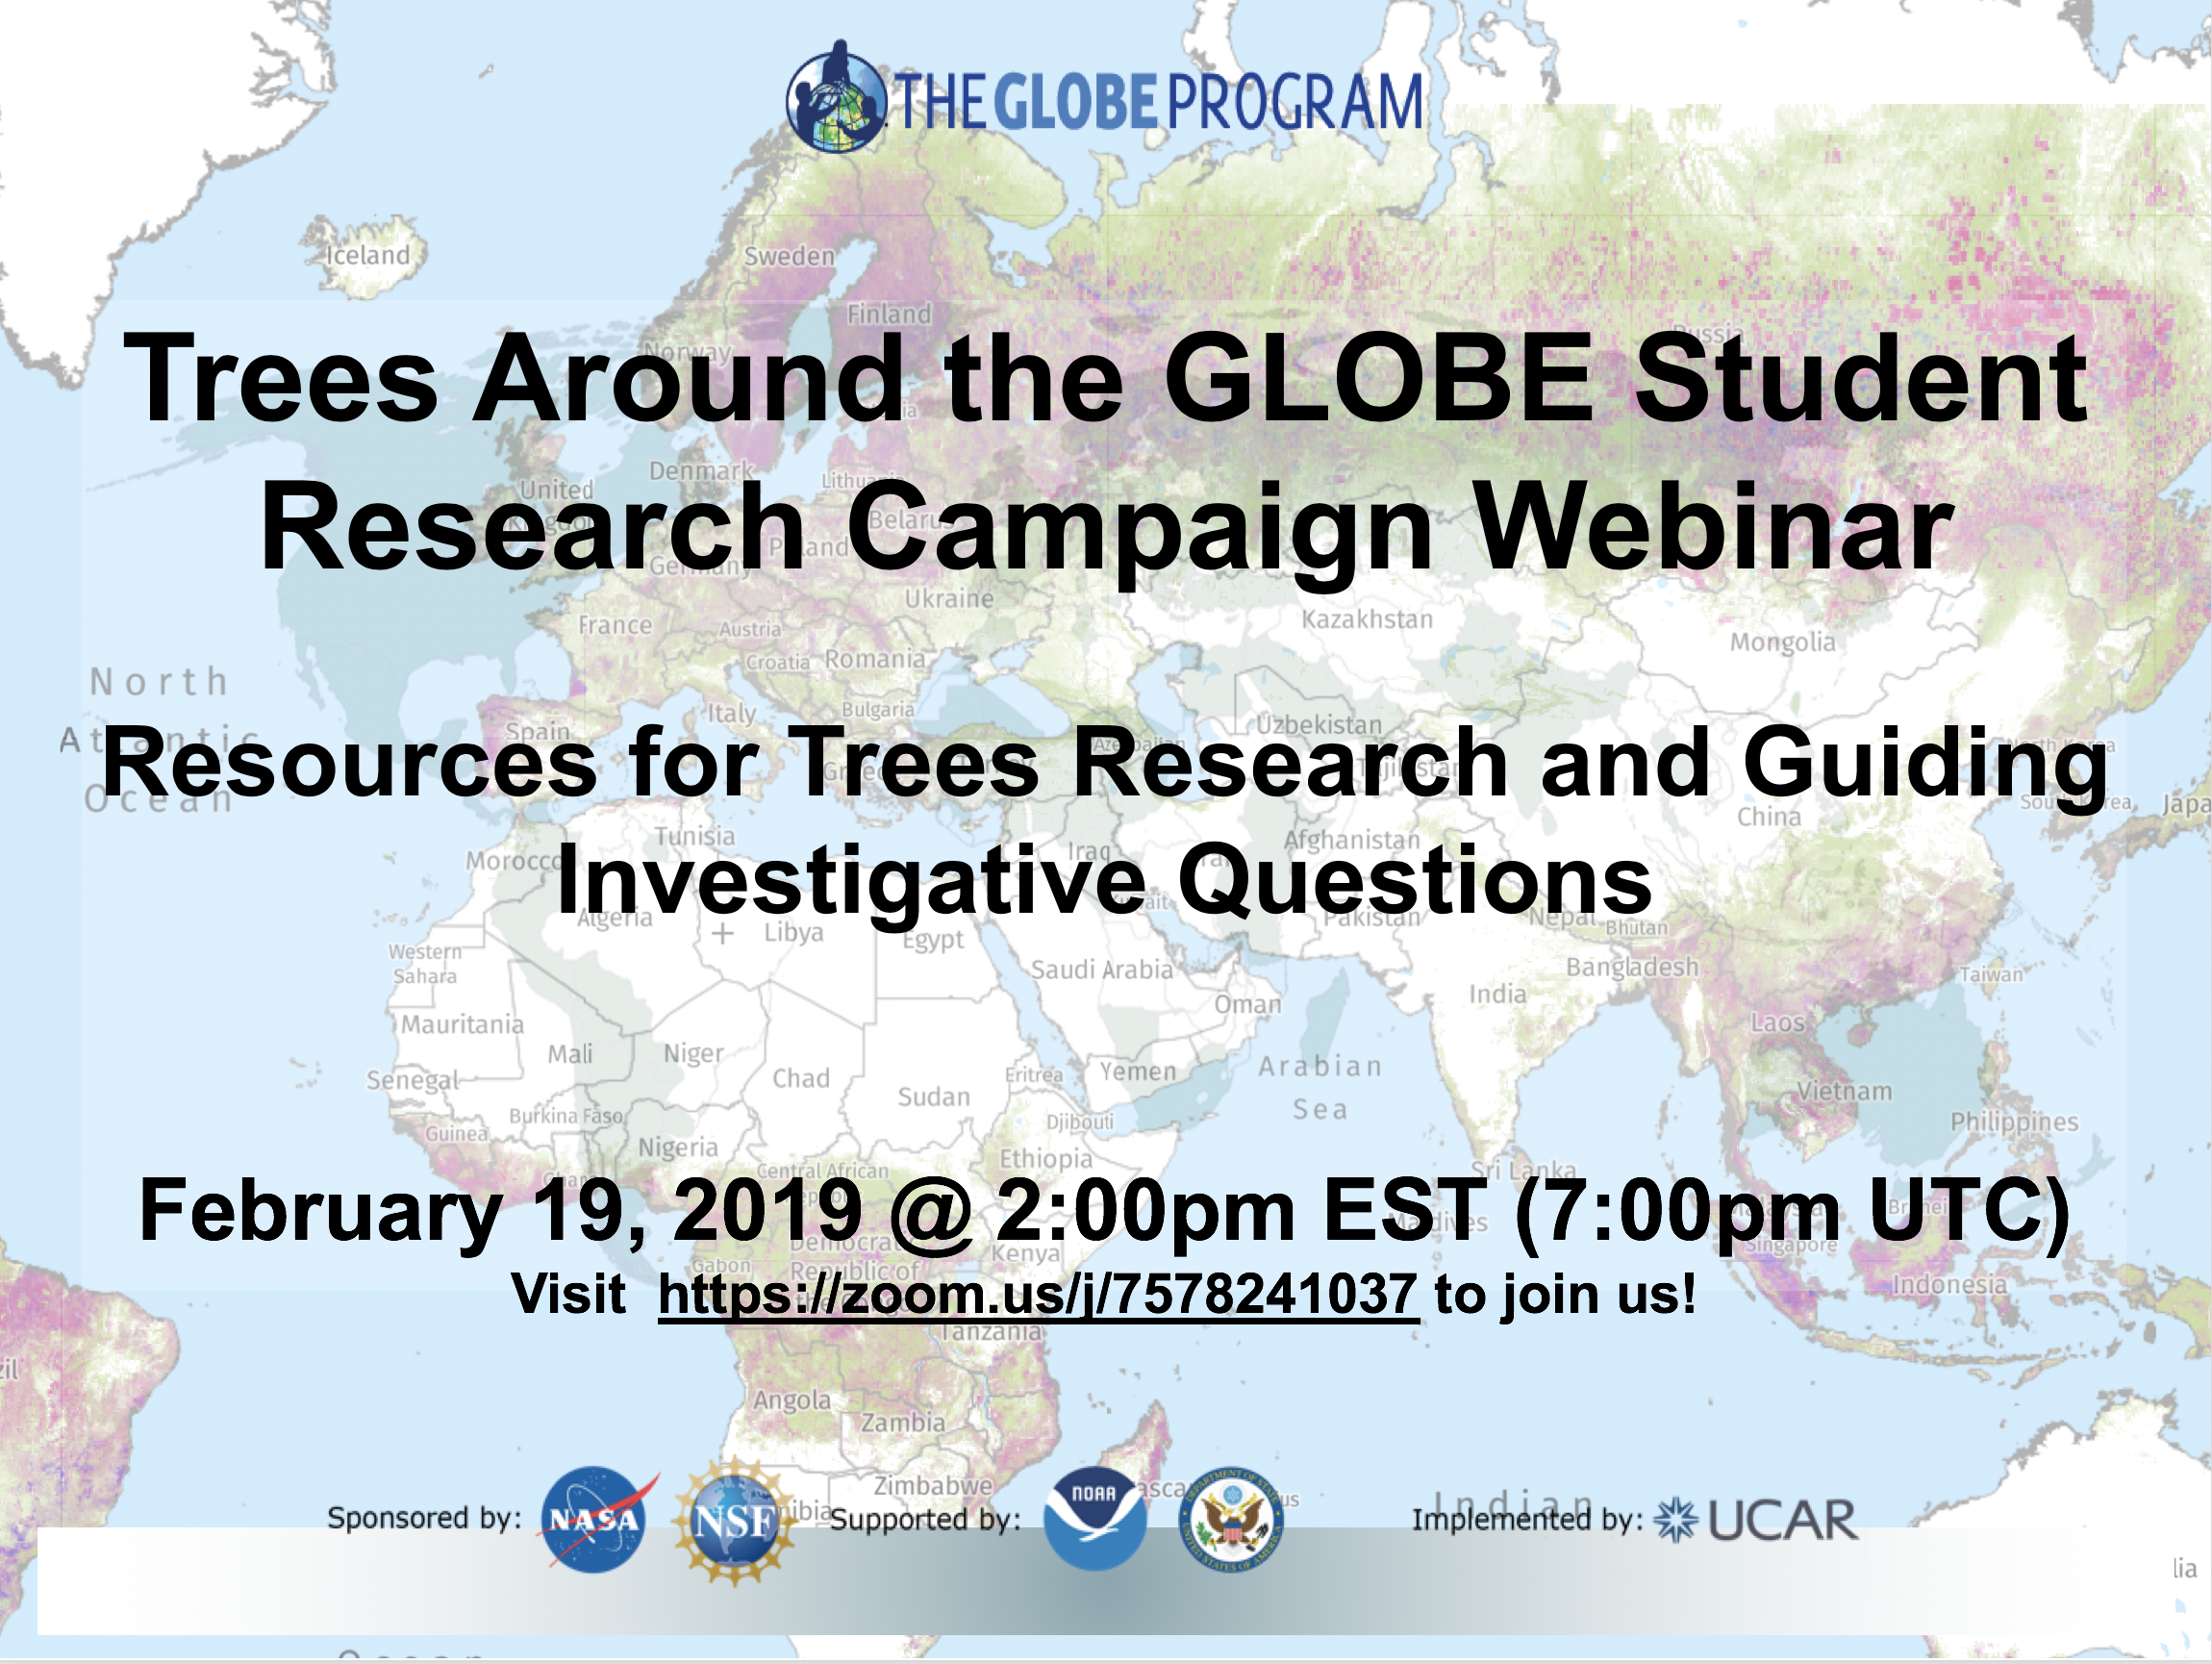 Graphic providing time/date information for the Trees Around the GLOBE webinar on 19 Feb 2019